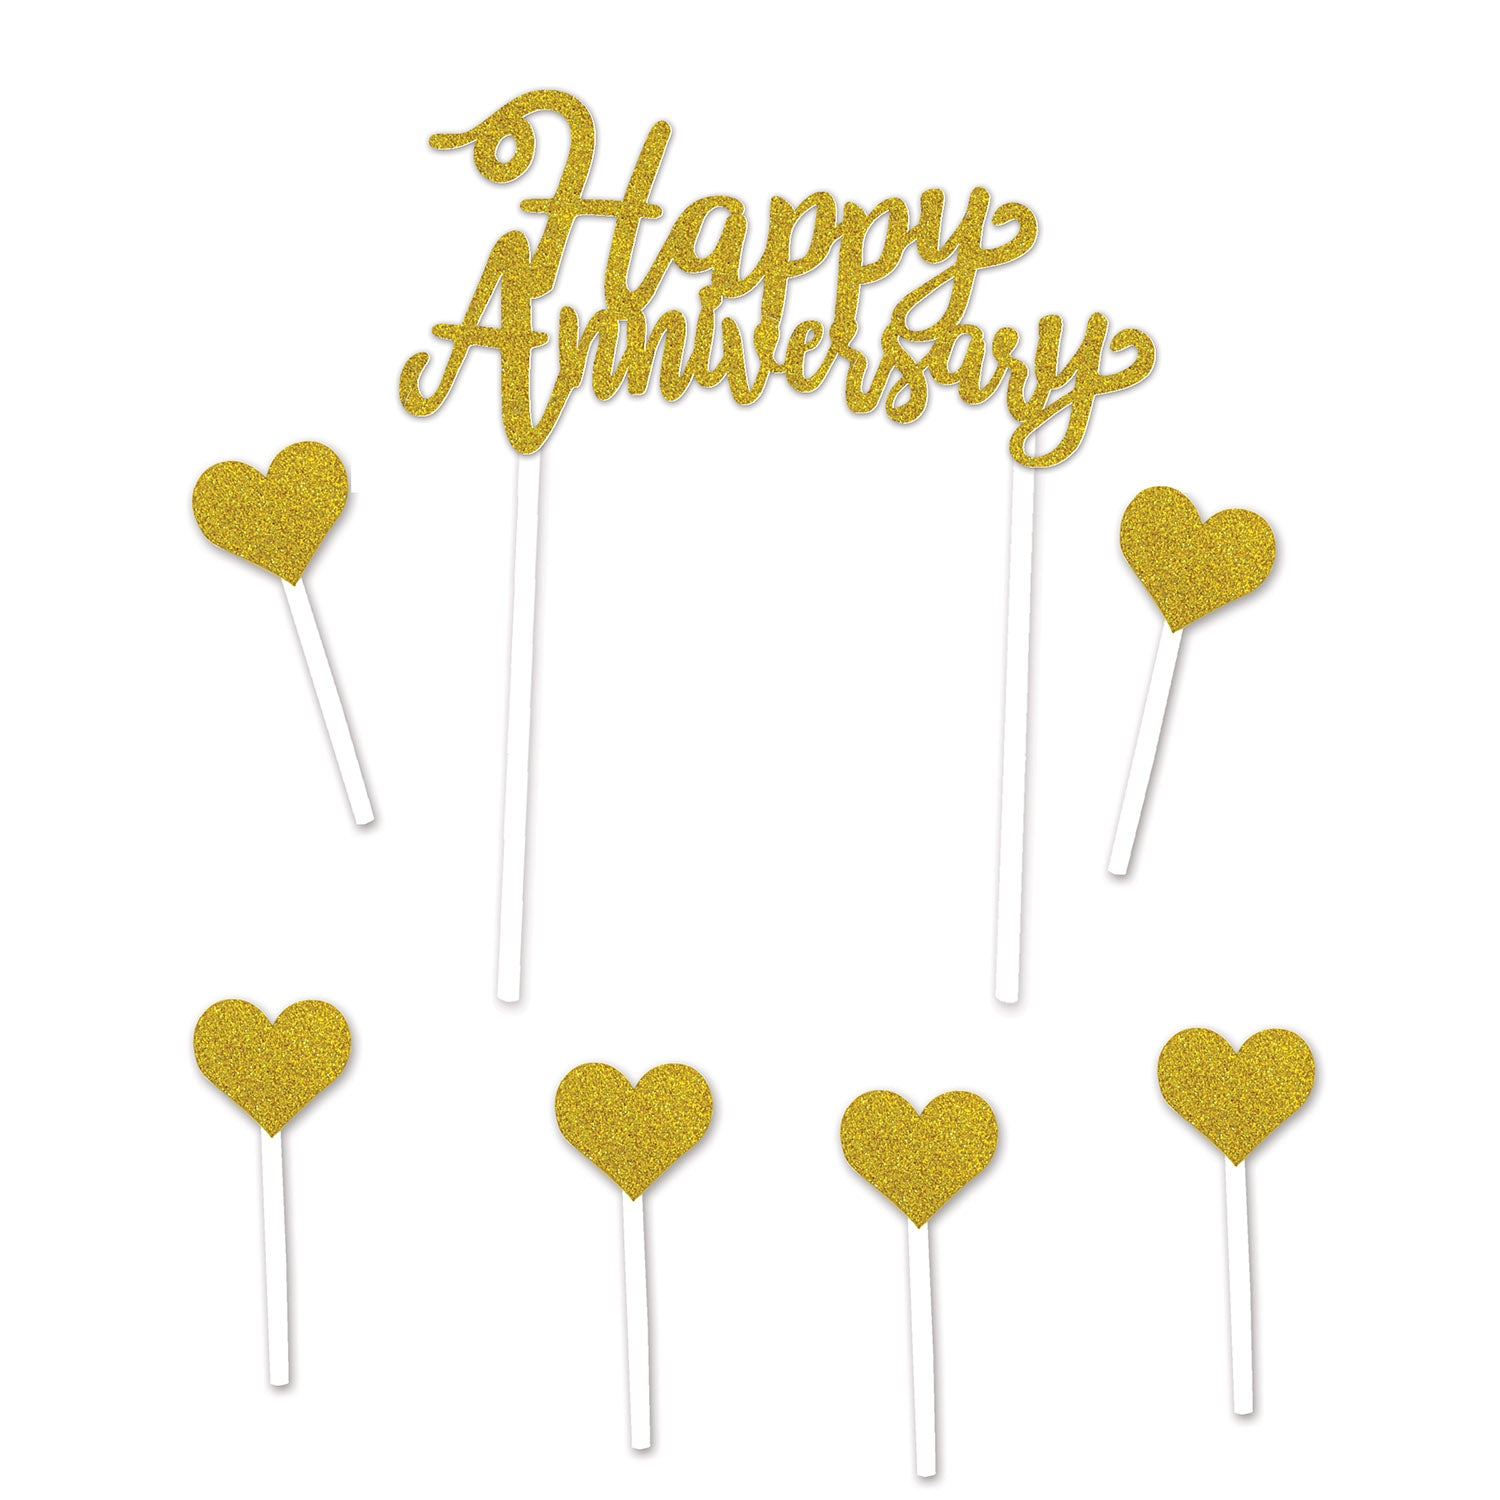 Happy Anniversary Cake Topper by Beistle - Anniversary Theme Decorations